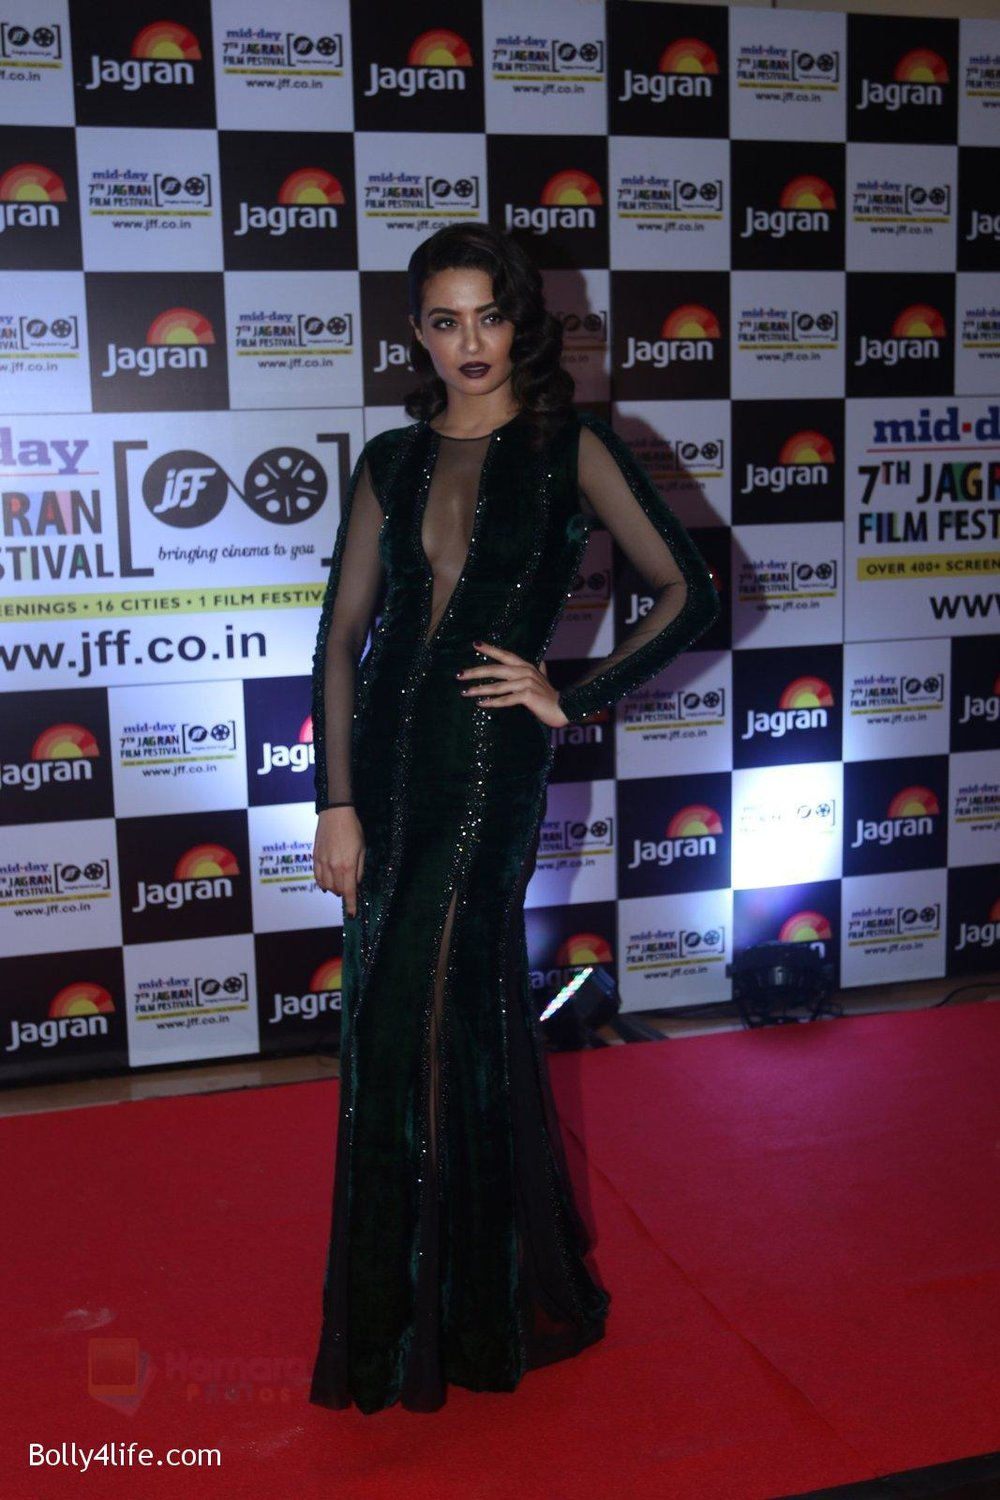 Surveen-Chawla-at-Jagran-Film-fest-awards-on-30th-Sept-2016-84.jpg